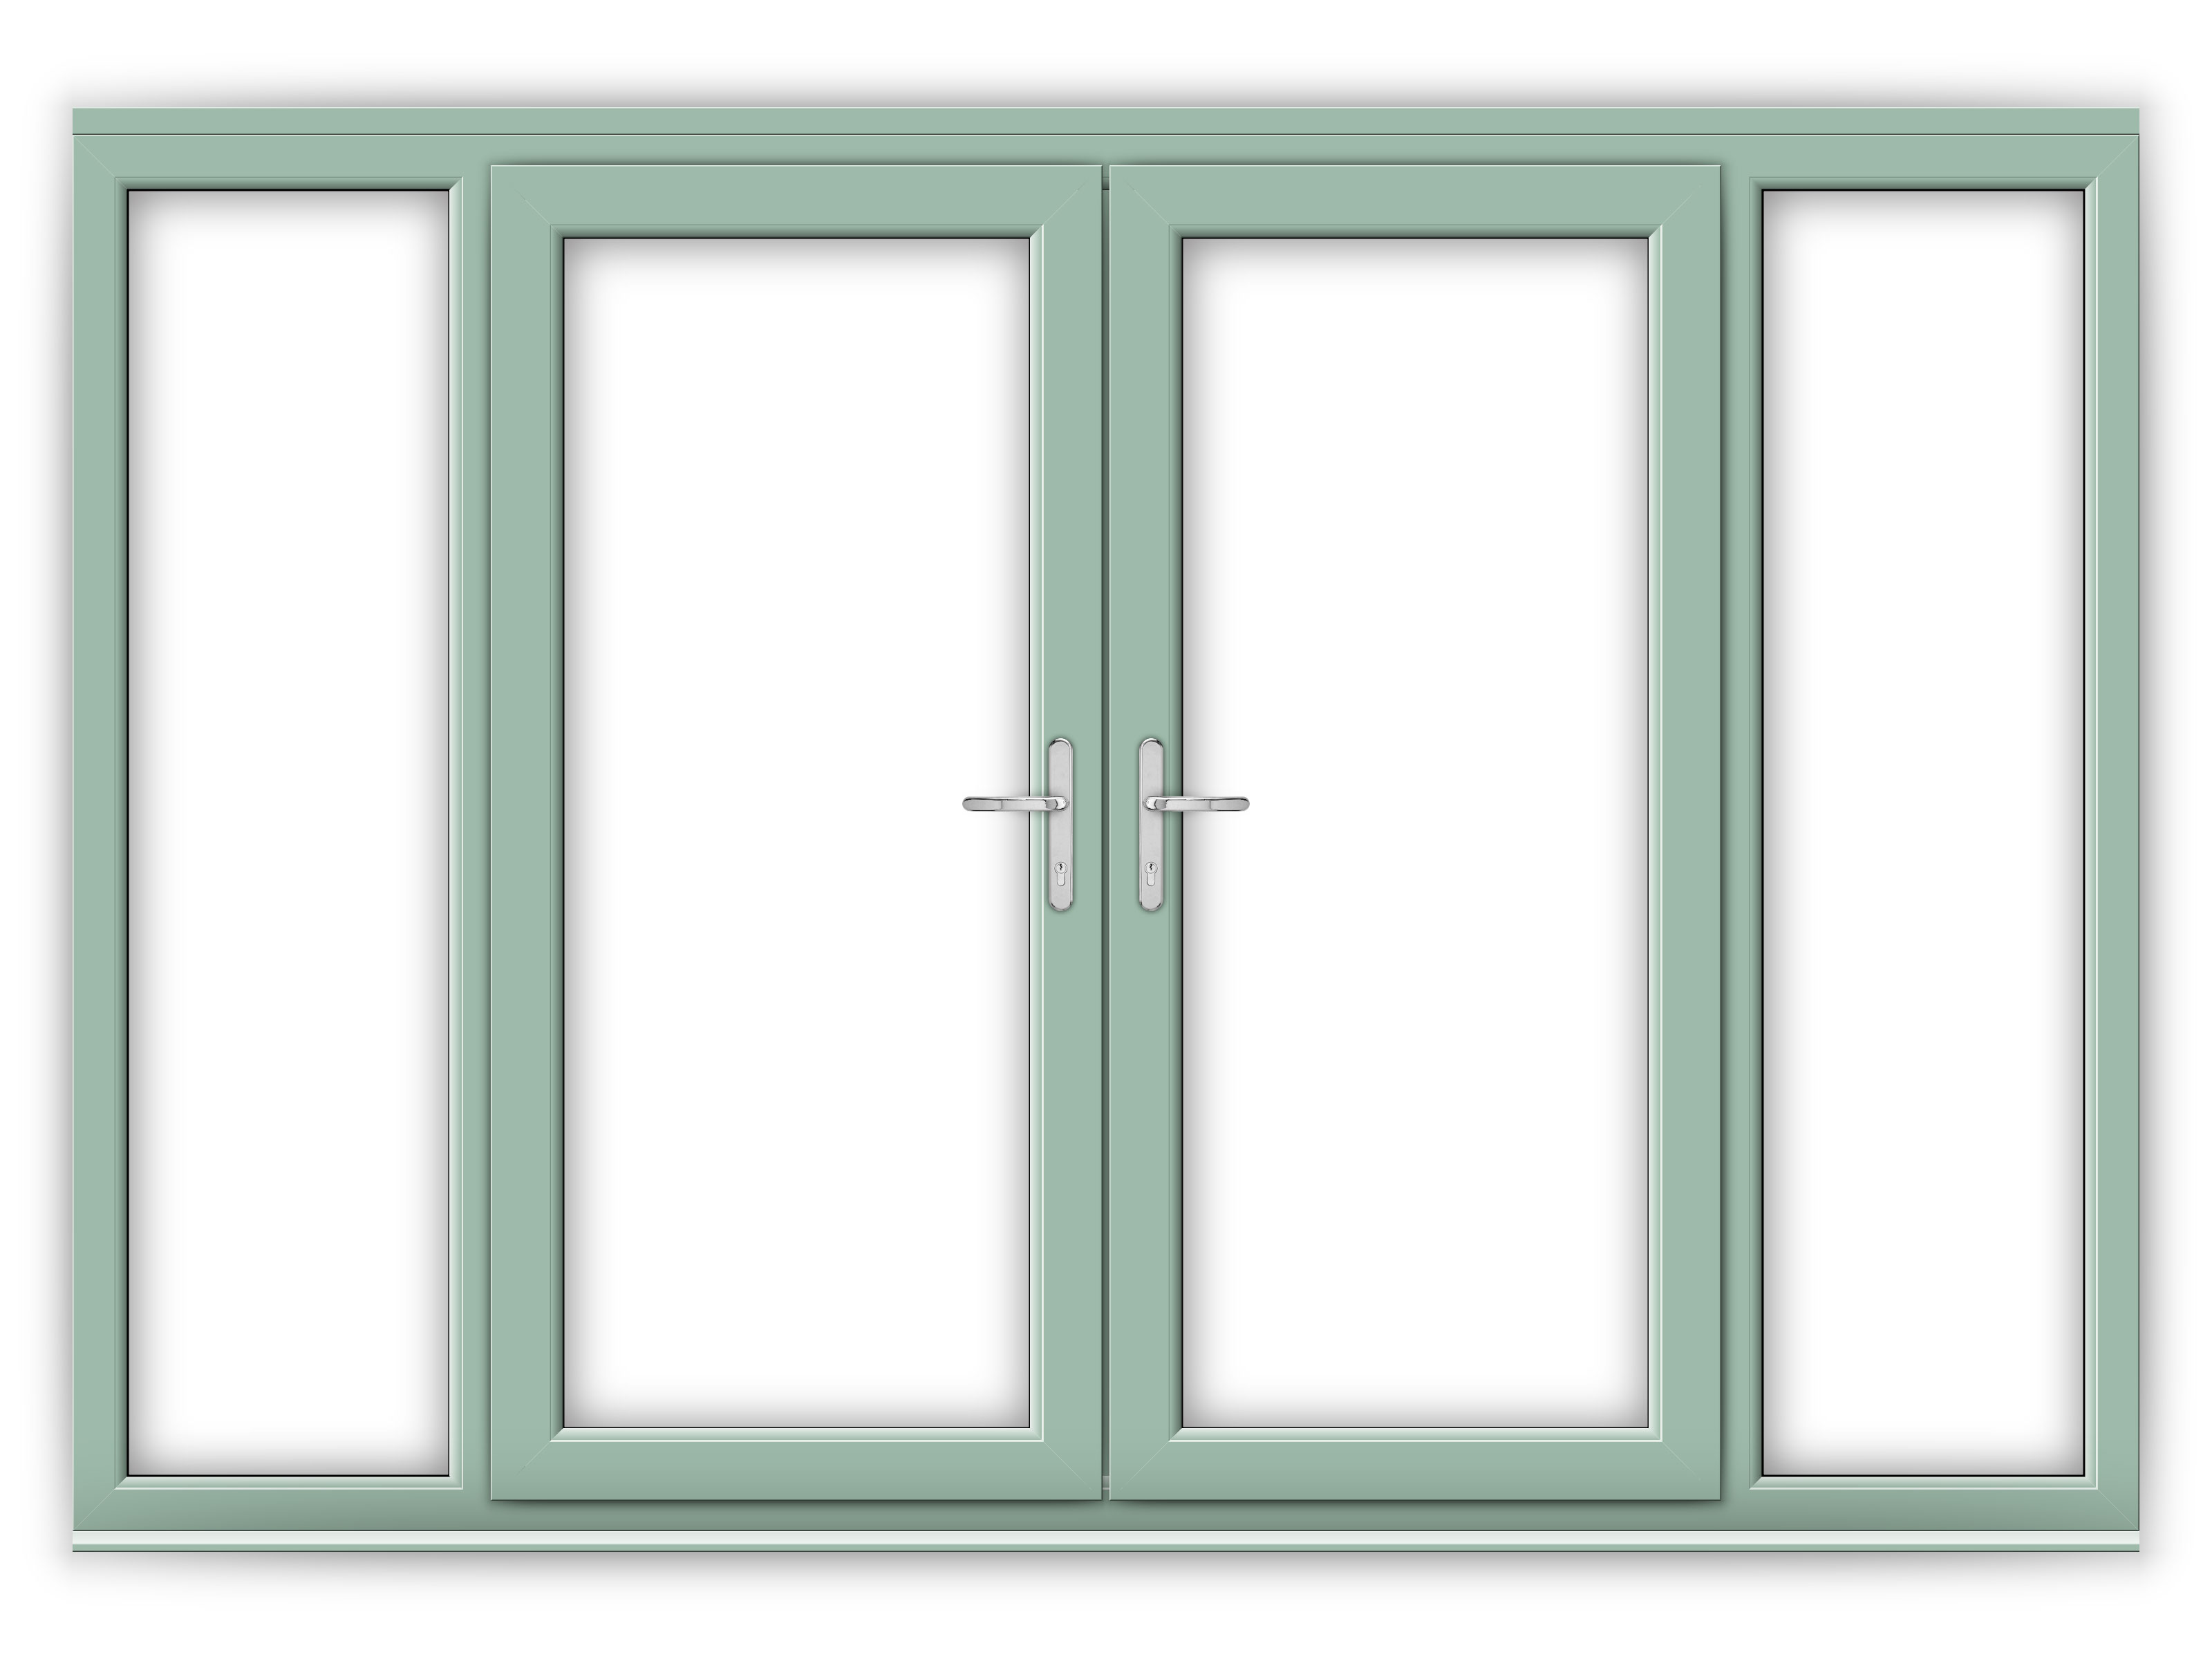 6ft Chartwell Green uPVC French Doors with Wide Side Panels  sc 1 st  Flying Doors & 6ft Chartwell Green uPVC French Doors with Wide Side Panels | Flying ...